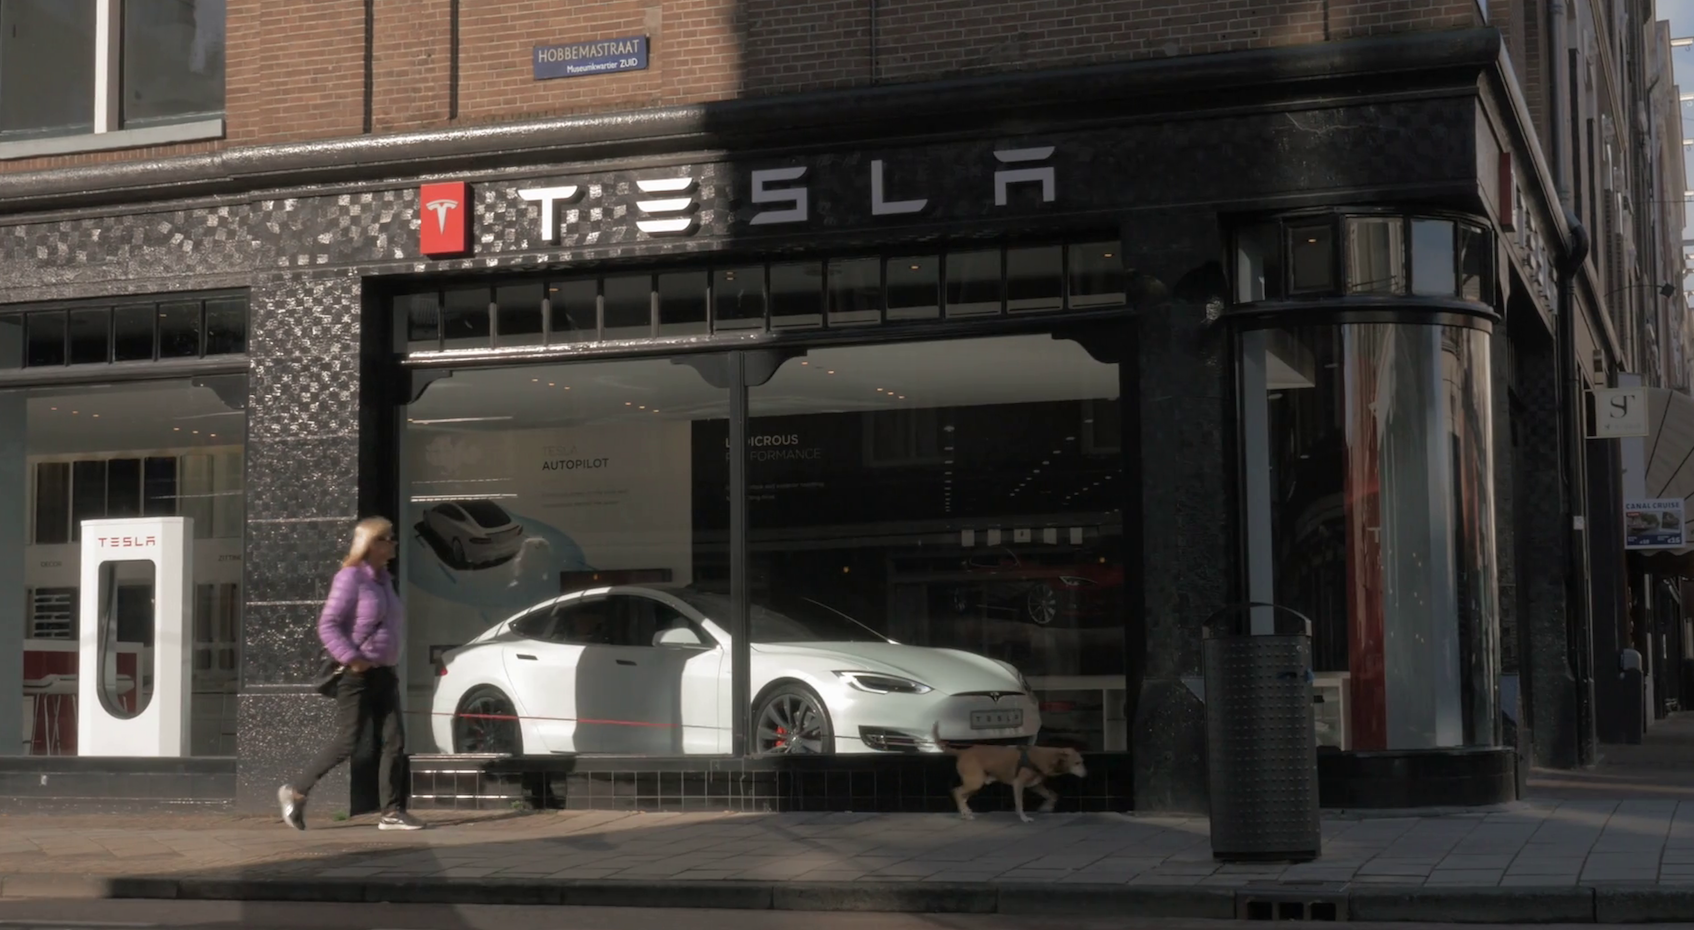 Tesla store in Amsterdam, Netherlands